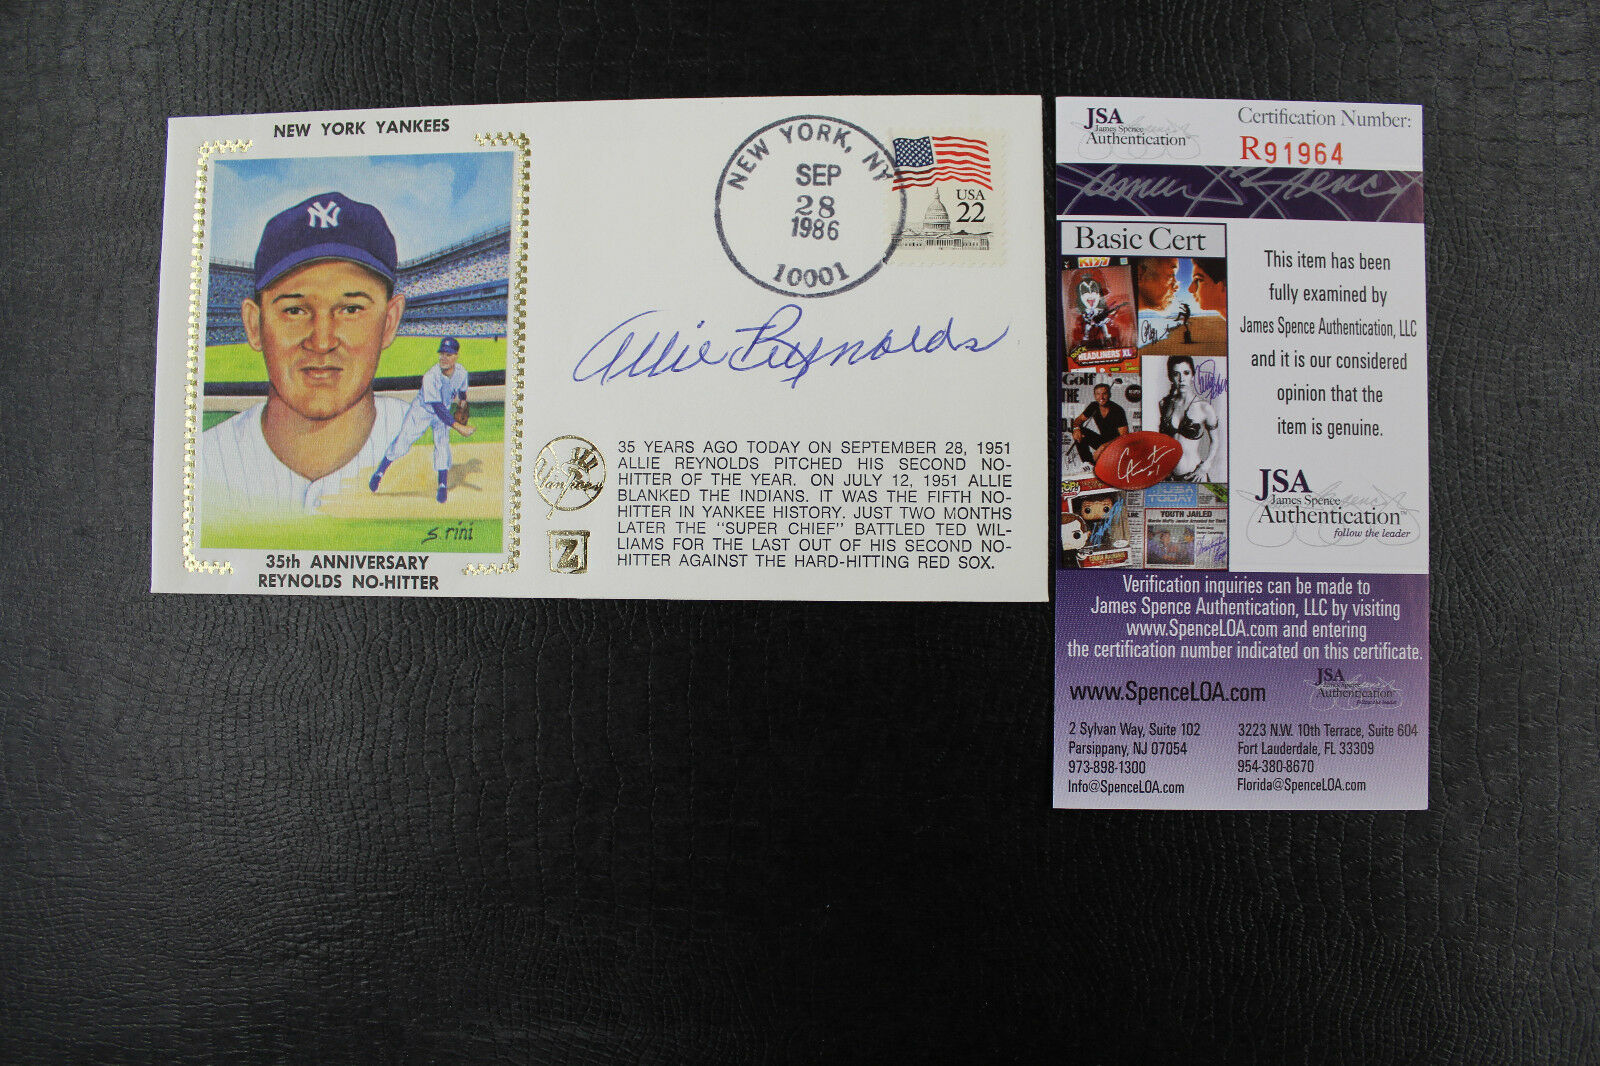 Primary image for Yankees ALLIE REYNOLDS 35th Anniversary No-Hitter AUTO 1986 Cachet/Envelope JSA